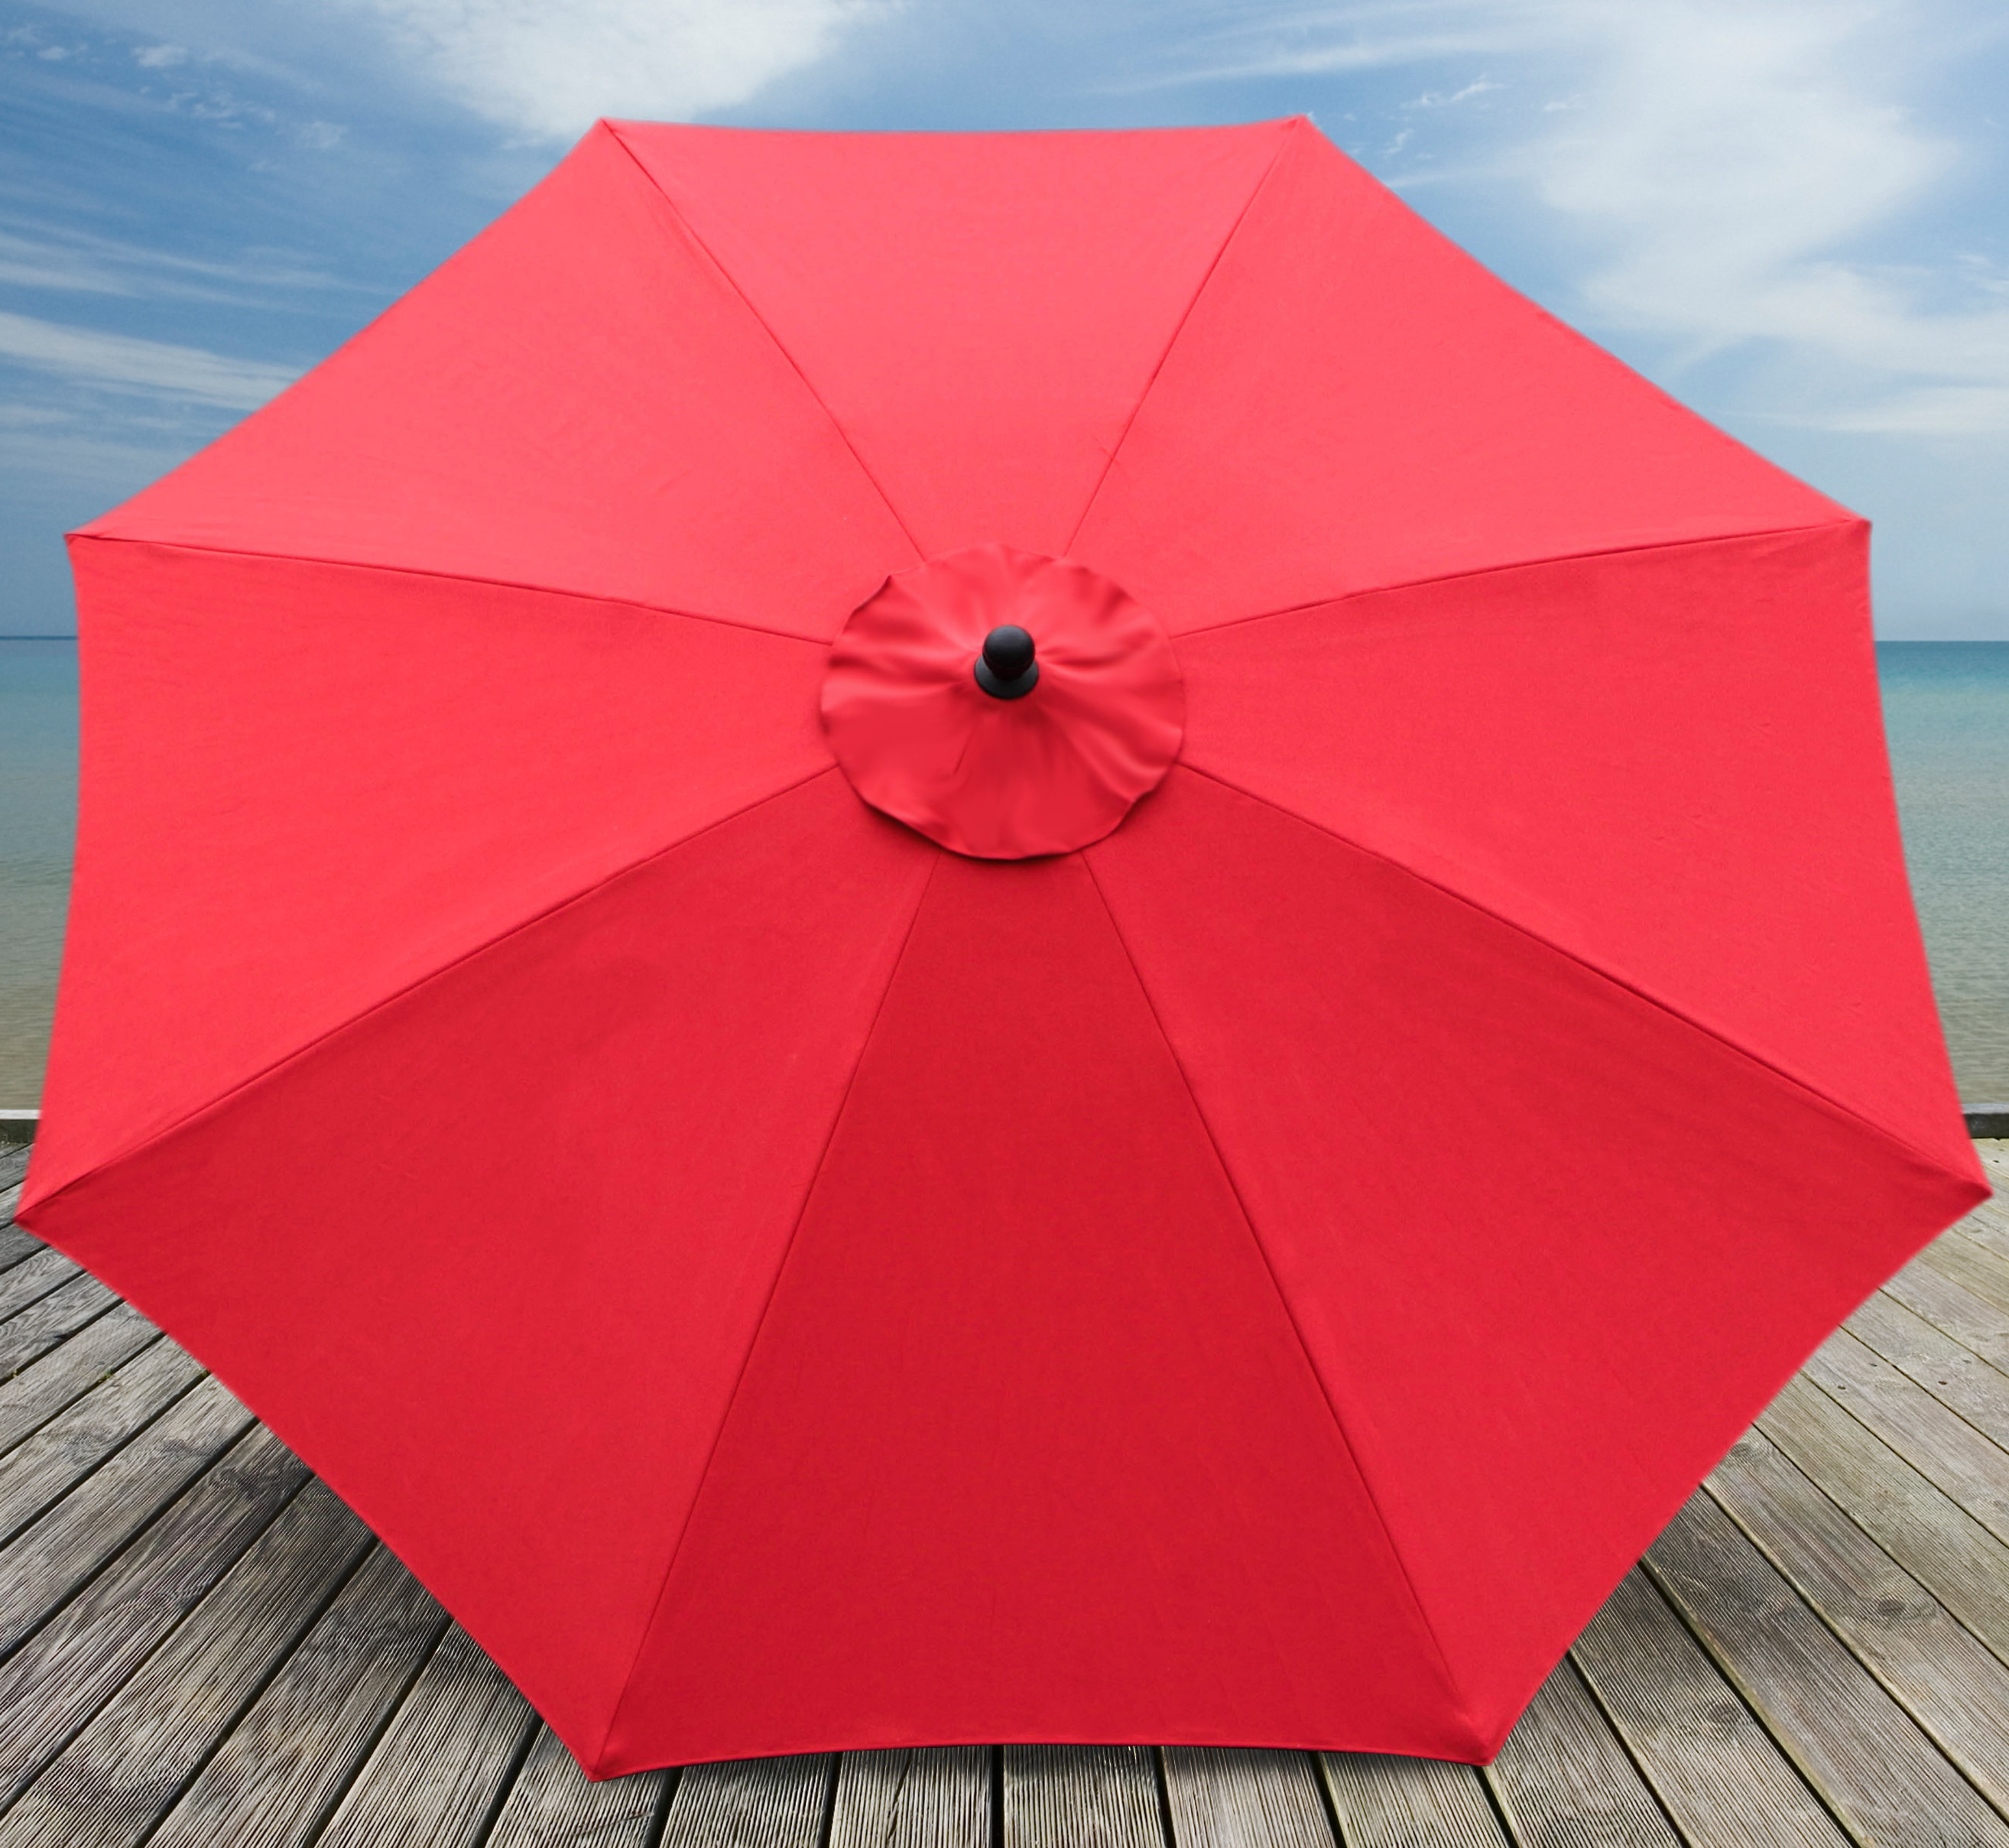 Mucci Madilyn 10' Market Sunbrella Umbrella In Most Popular Mucci Madilyn Market Sunbrella Umbrellas (Gallery 3 of 20)